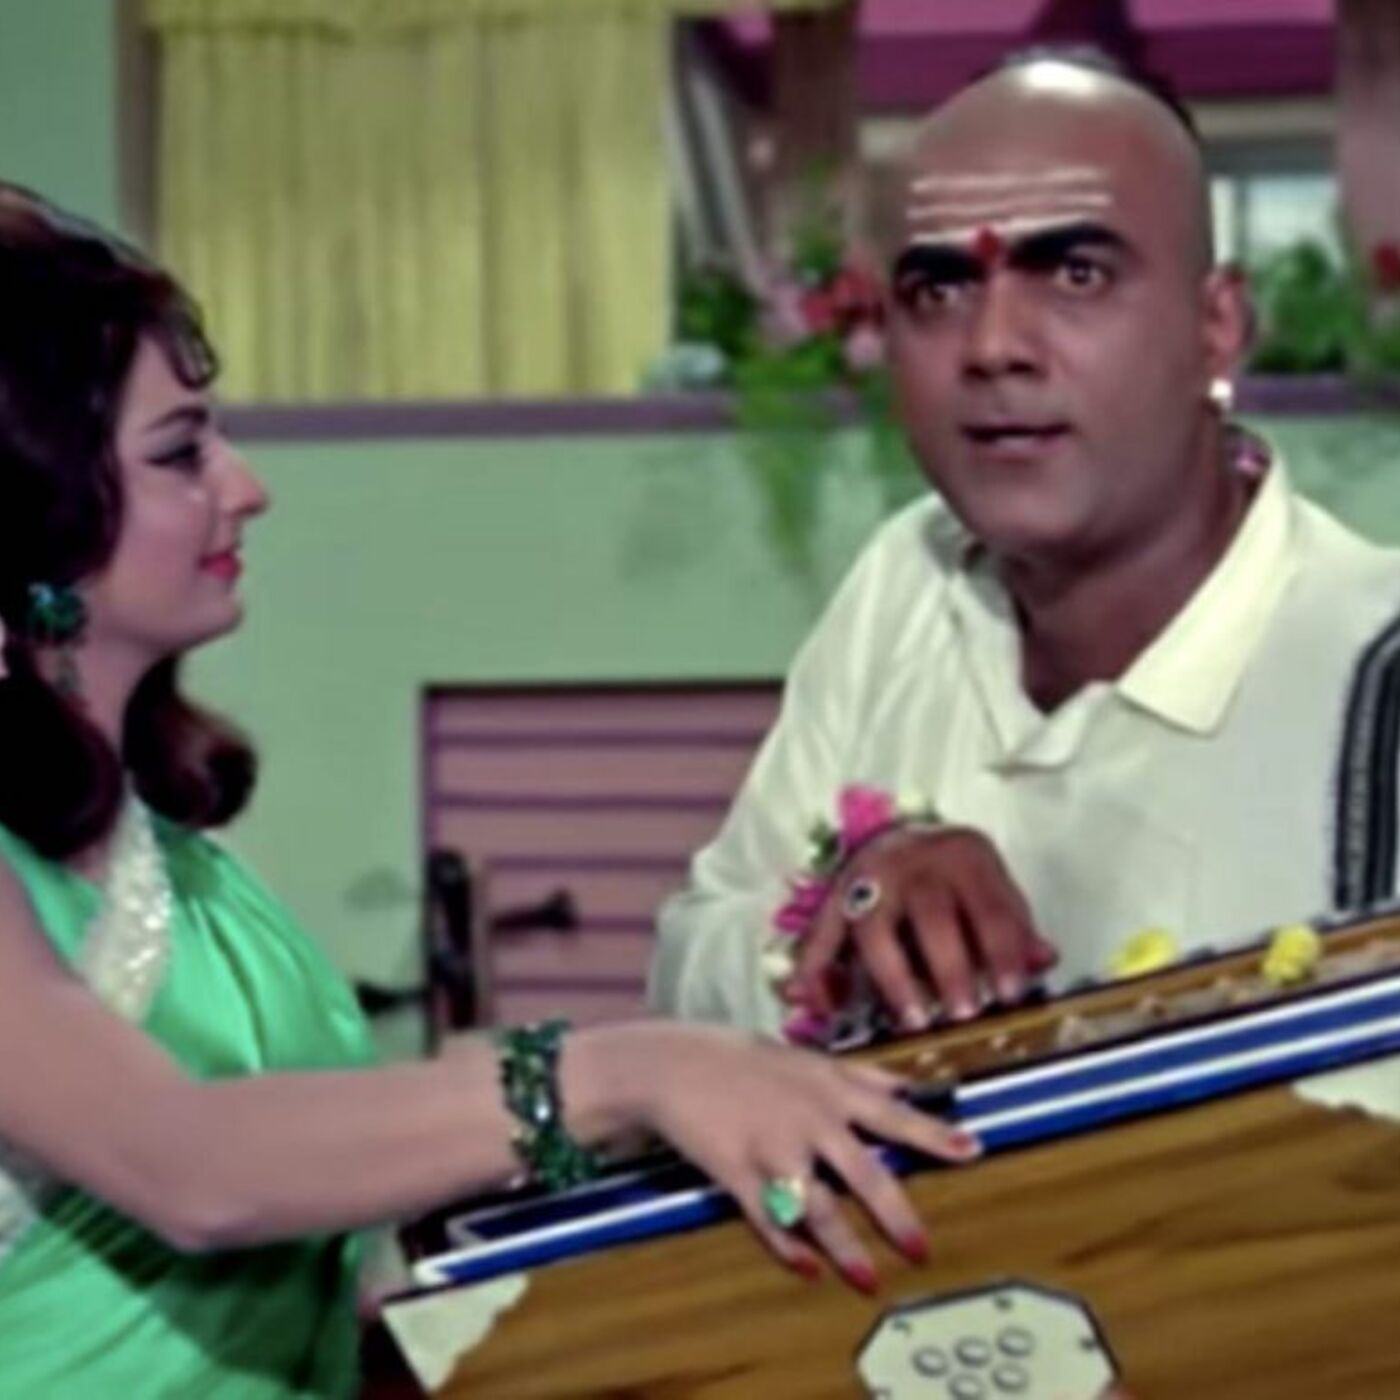 Old Hindi 'Fun' songs to help during House Arrest